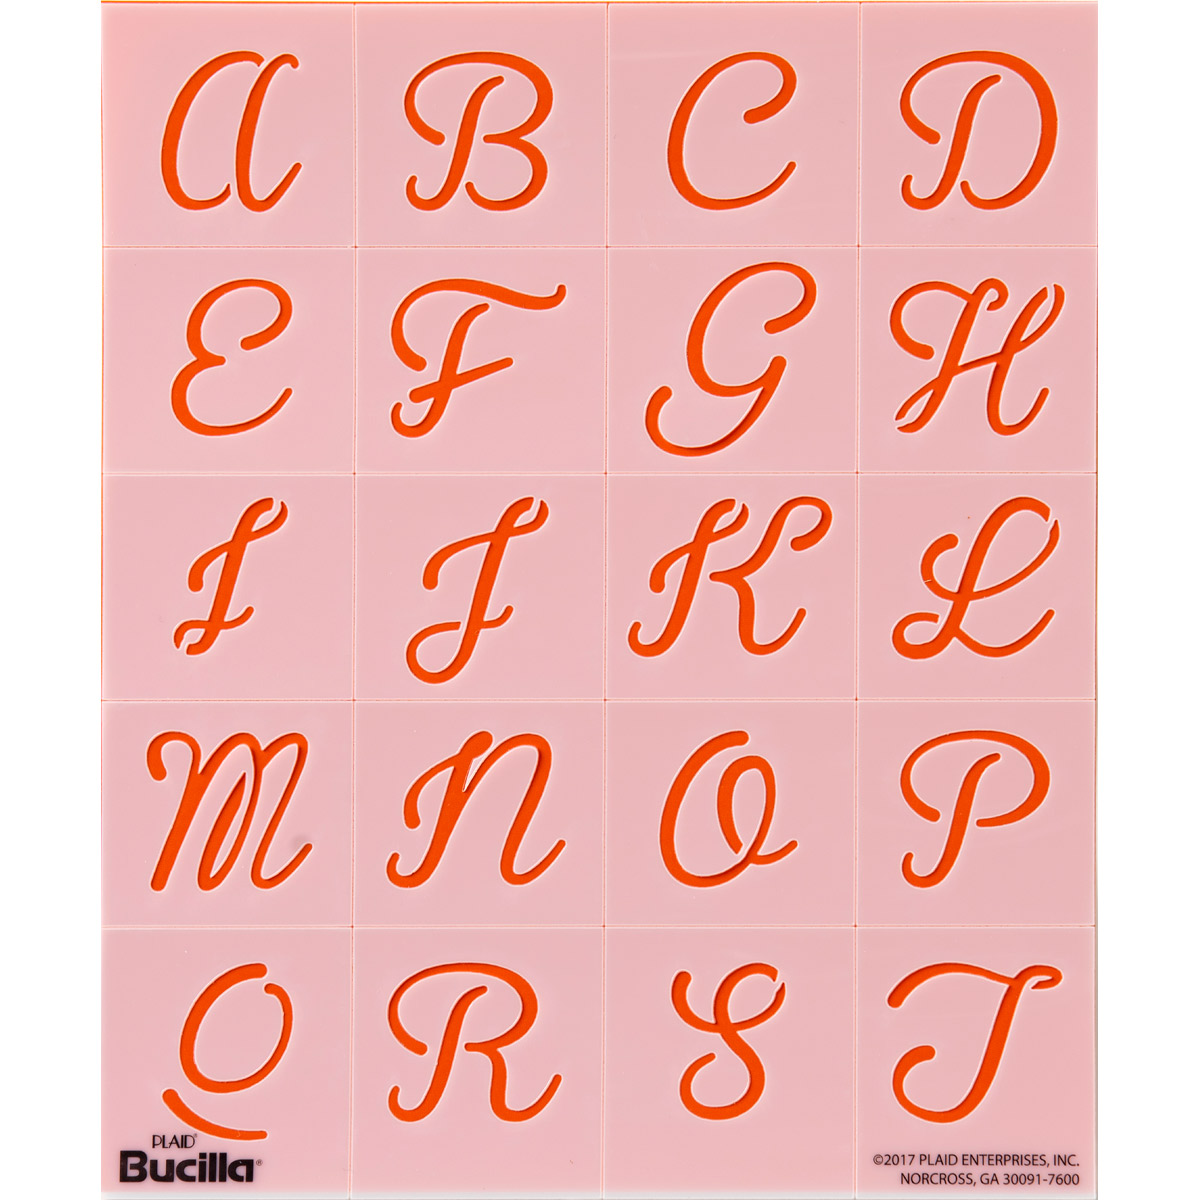 Bucilla ® Lettering and Monogramming Template Kit - Alphabet Script